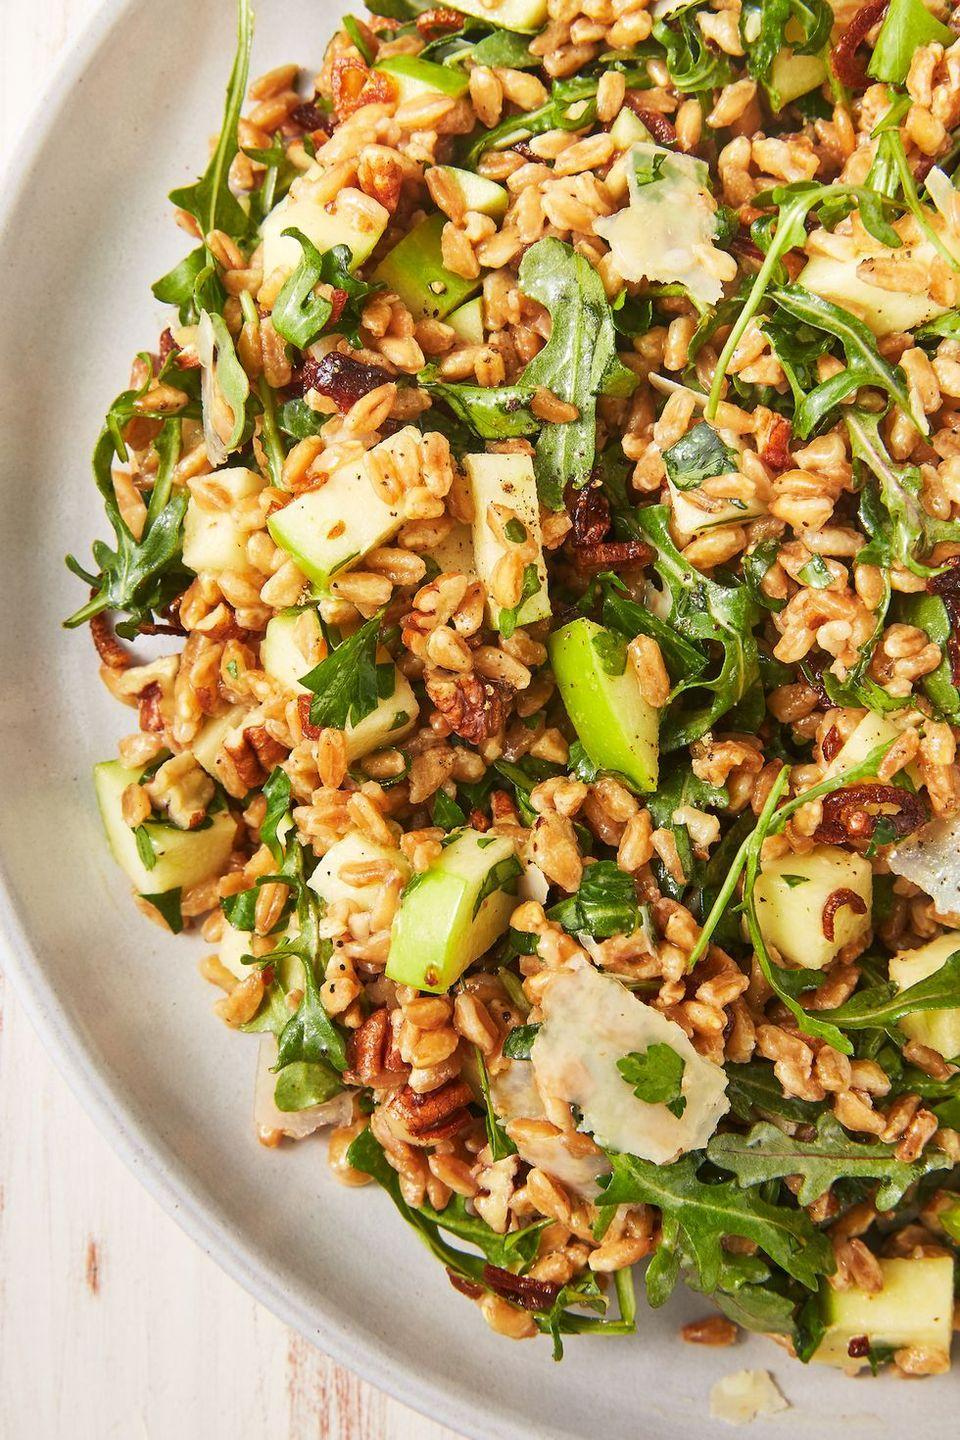 """<p>Sure, boiling farro in water is fine. But boiling water in stock is SO much more flavourful. We like adding a bay leaf too, but feel to add your favourite hearty herbs like rosemary or thyme. </p><p>Get the <a href=""""https://www.delish.com/uk/cooking/recipes/a29891118/best-farro-salad-recipe/"""" rel=""""nofollow noopener"""" target=""""_blank"""" data-ylk=""""slk:Farro Salad"""" class=""""link rapid-noclick-resp"""">Farro Salad</a> recipe.</p>"""